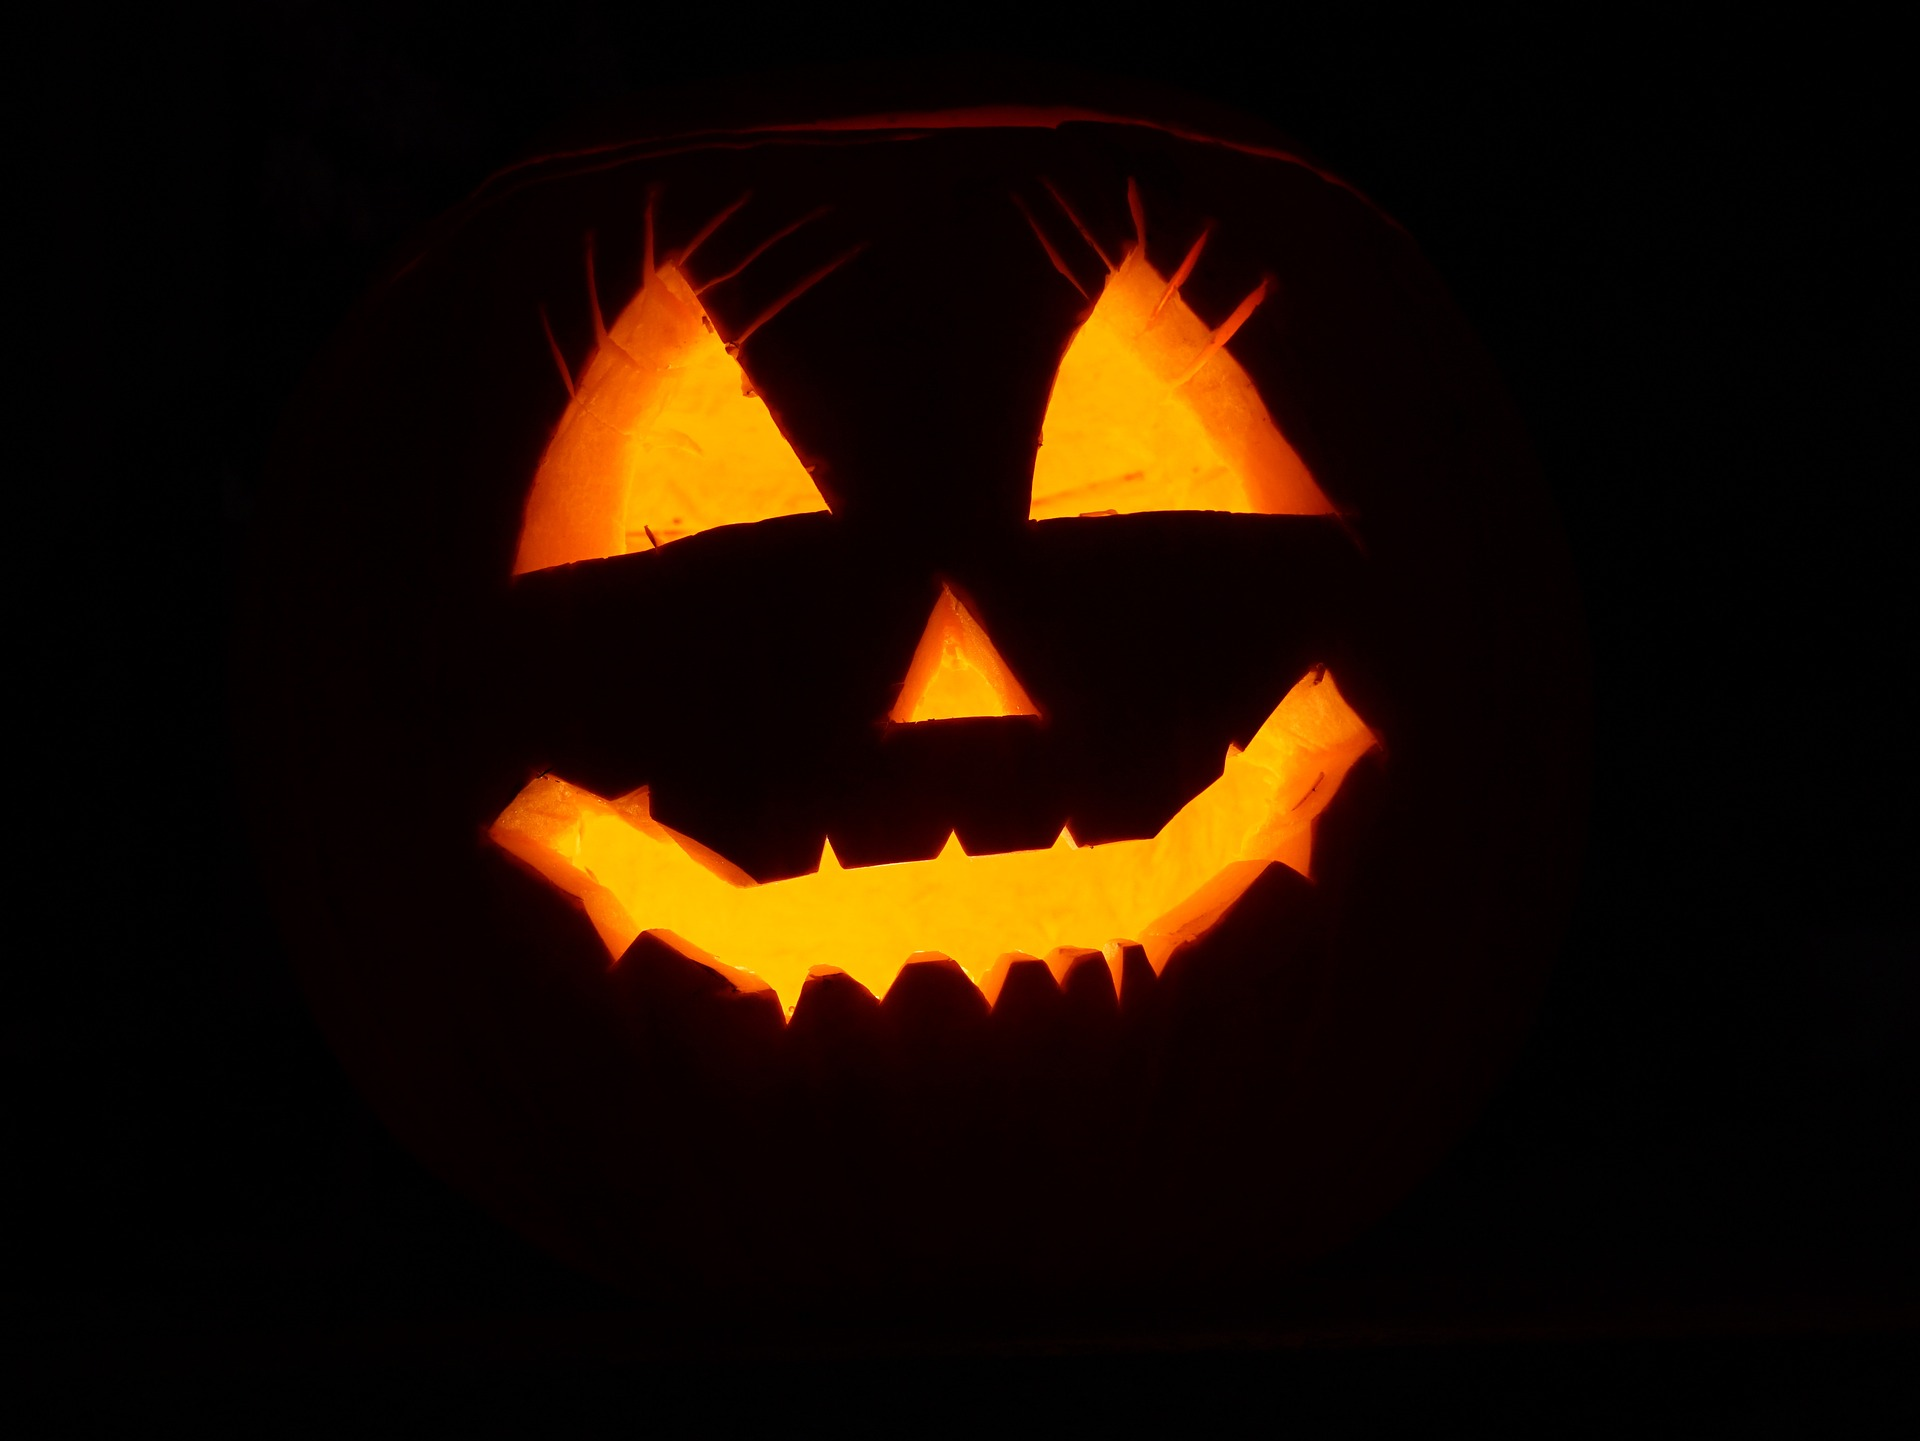 Image of a Carved Pumpkin, lit from the inside with a candle, glowing in the darkness